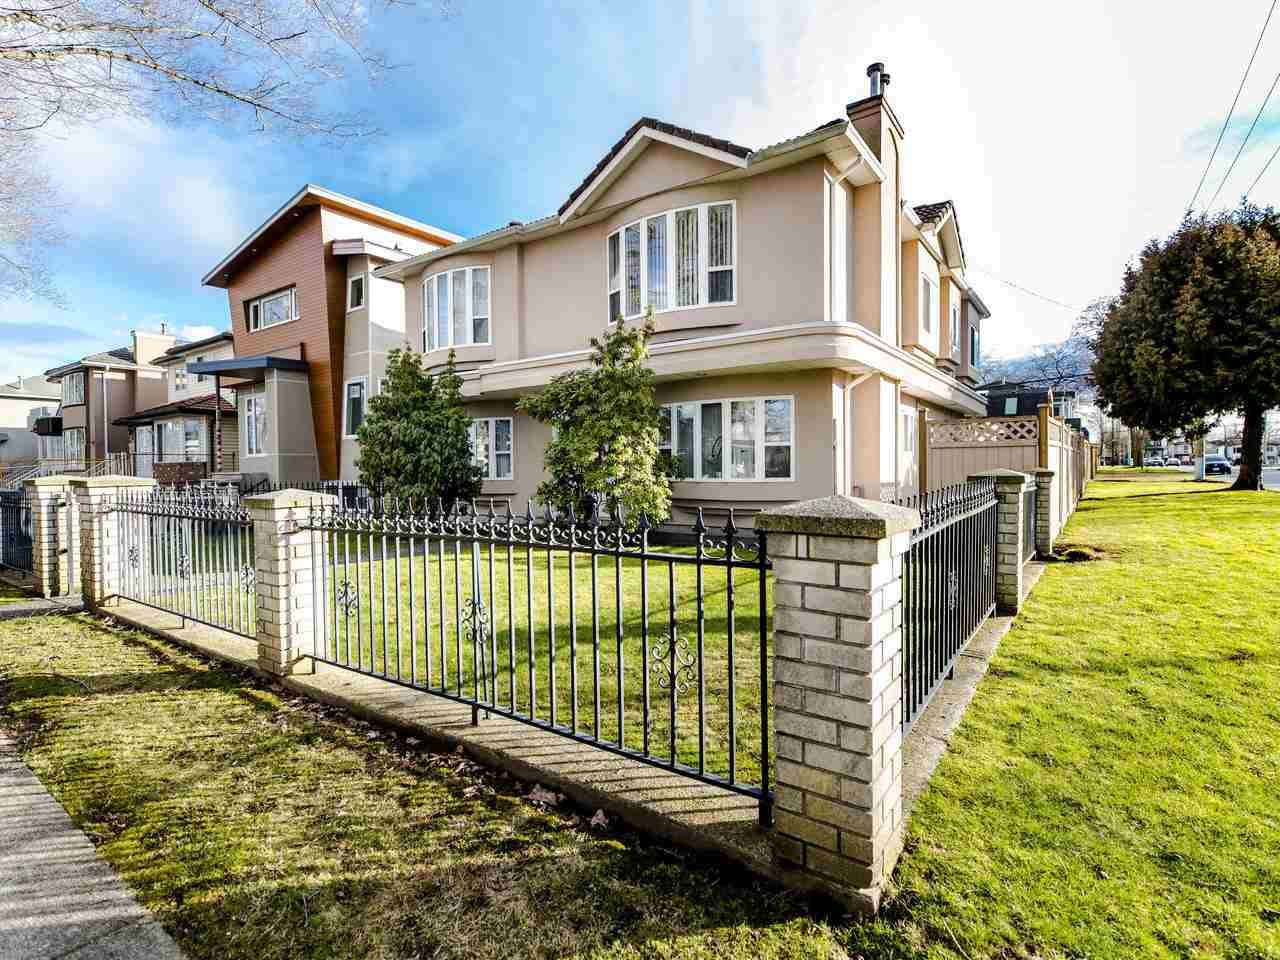 Main Photo: 2208 E 43RD Avenue in Vancouver: Killarney VE House for sale (Vancouver East)  : MLS®# R2437470